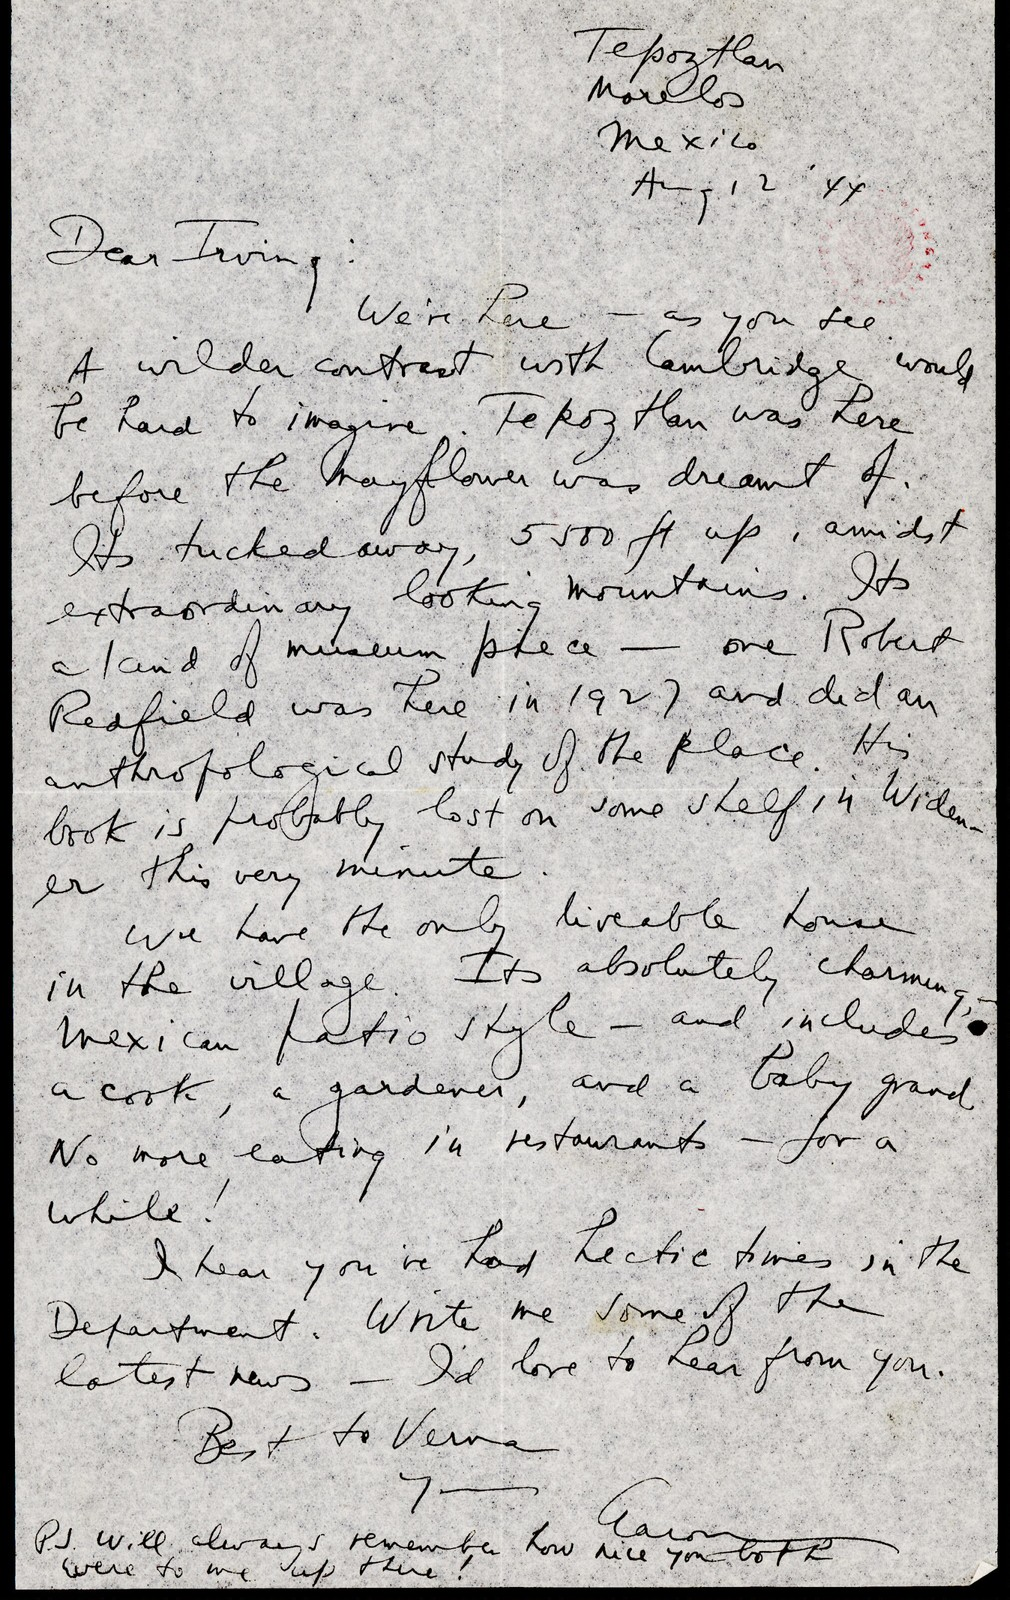 Letter from Aaron Copland to Irving Fine, August 12, 1944.